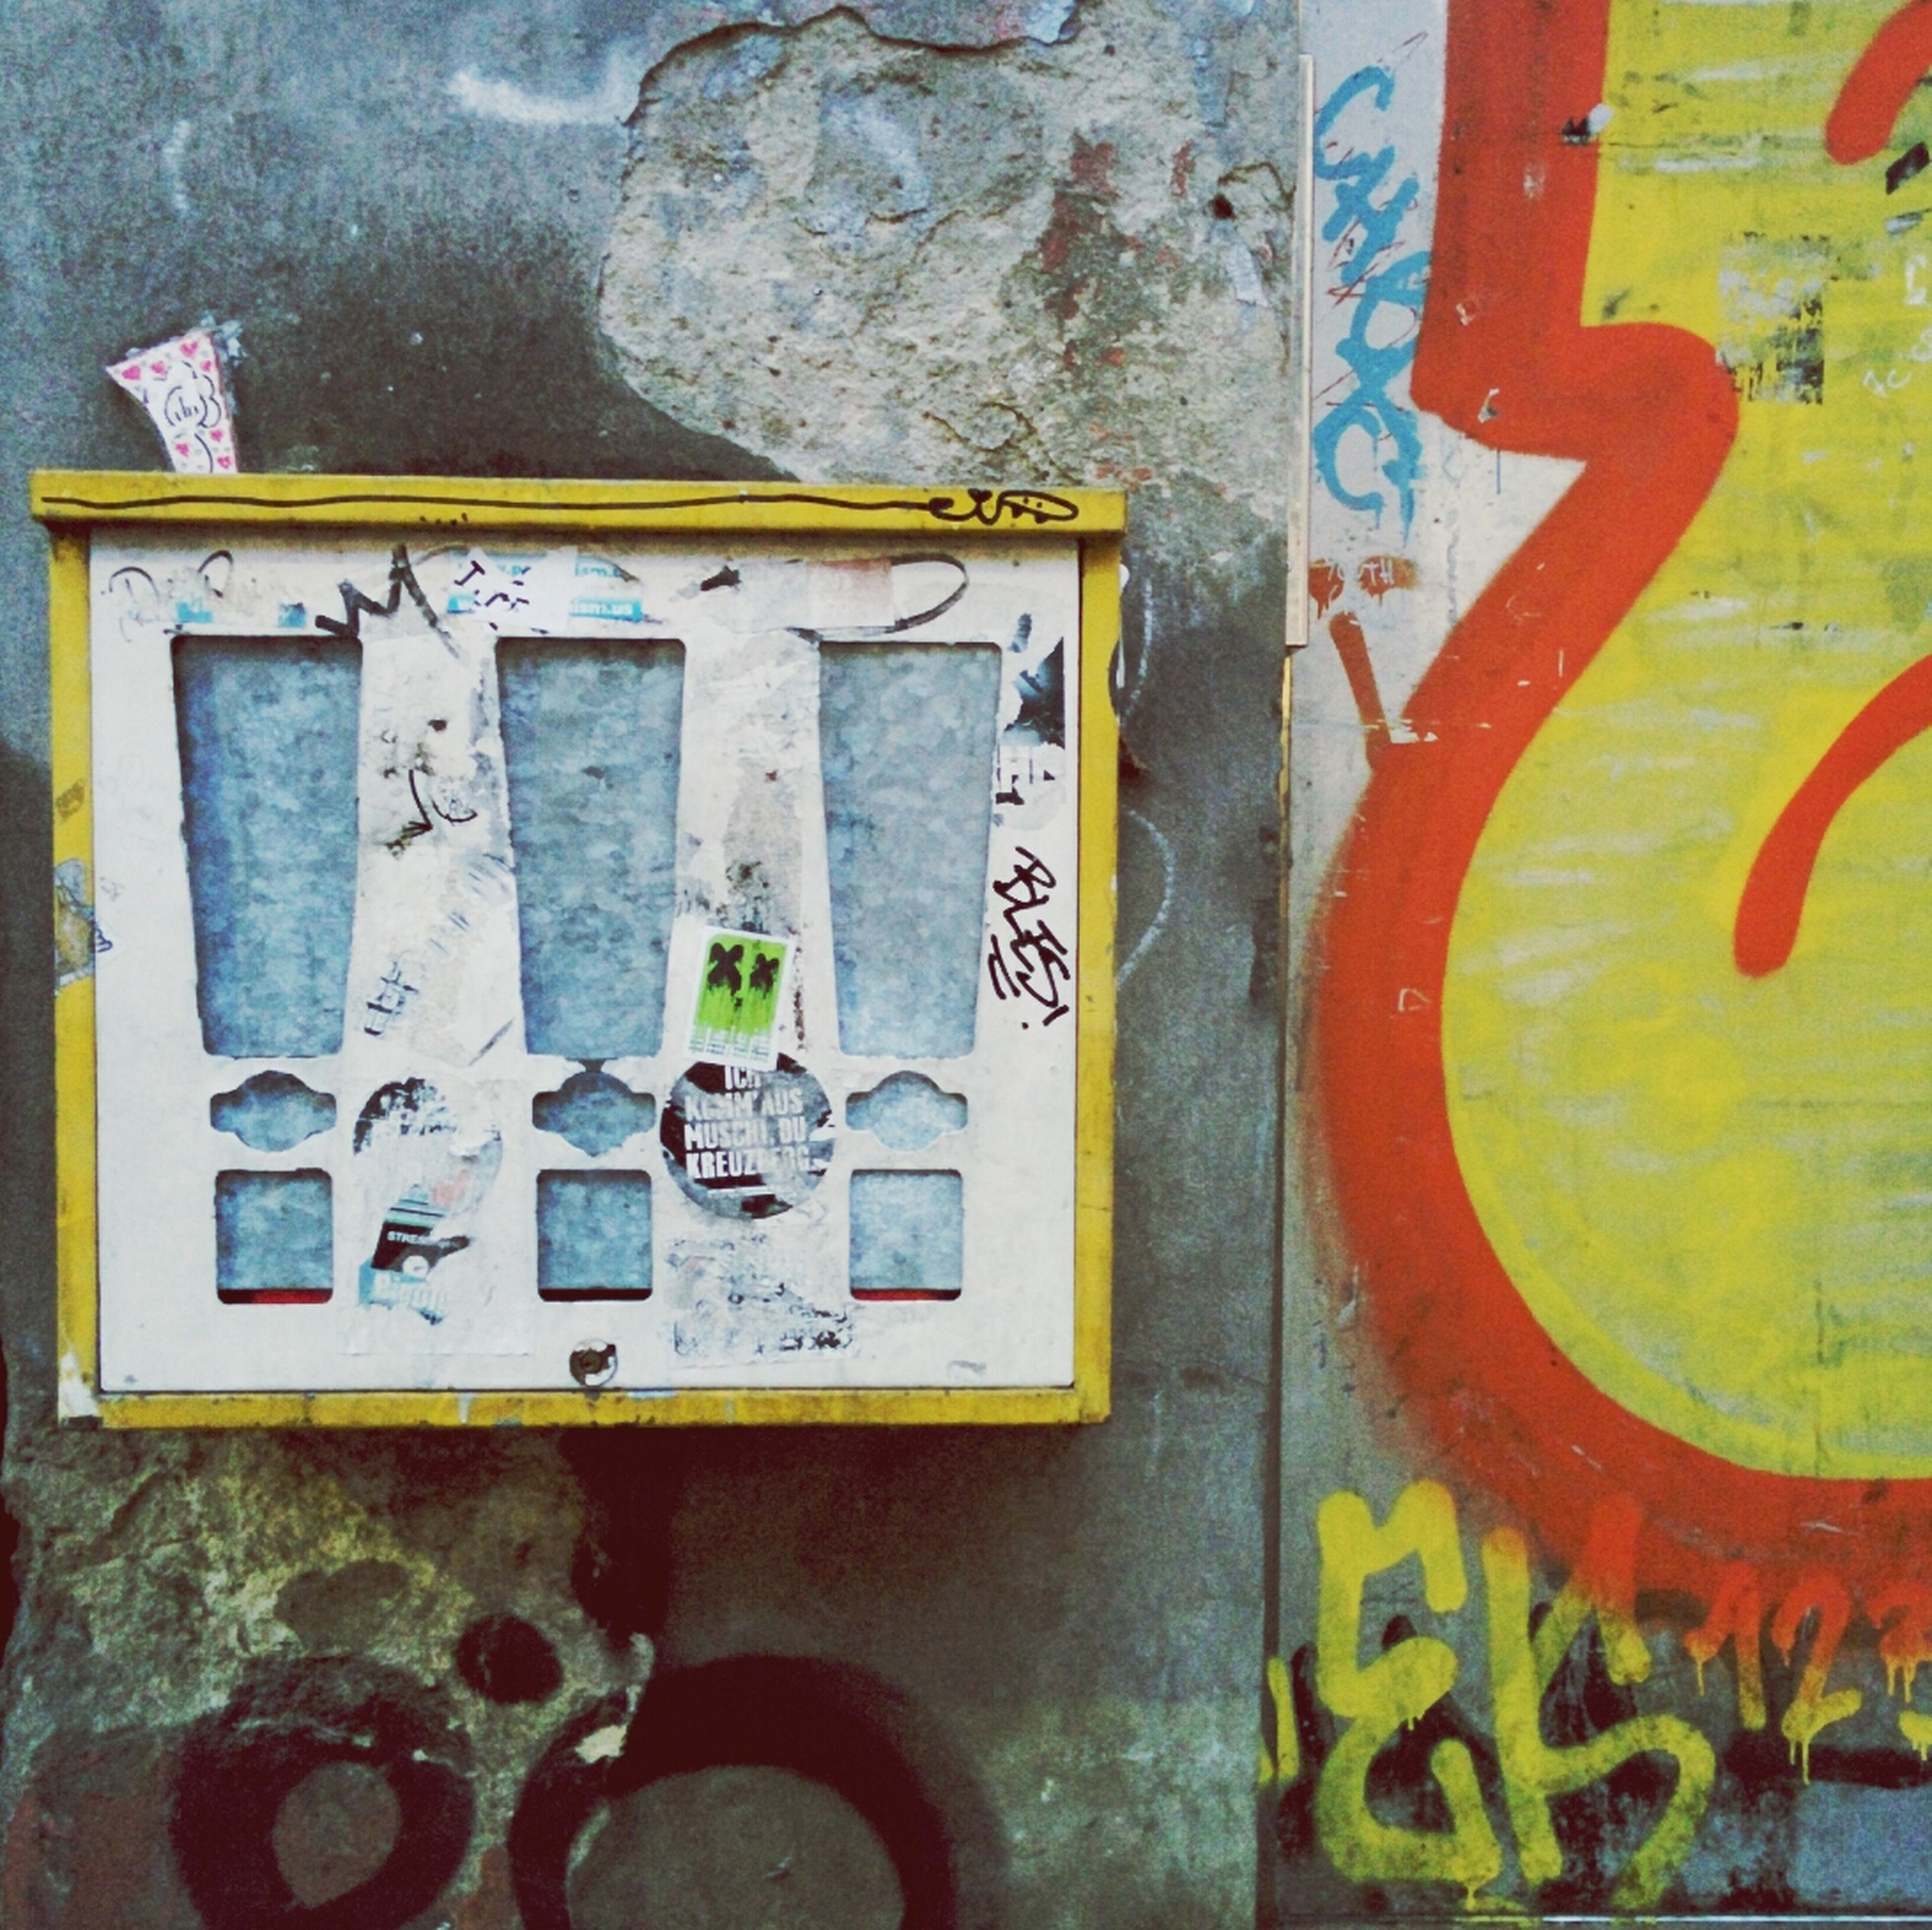 text, communication, wall - building feature, indoors, multi colored, western script, close-up, variation, graffiti, number, metal, wall, old, art and craft, full frame, no people, yellow, art, backgrounds, day